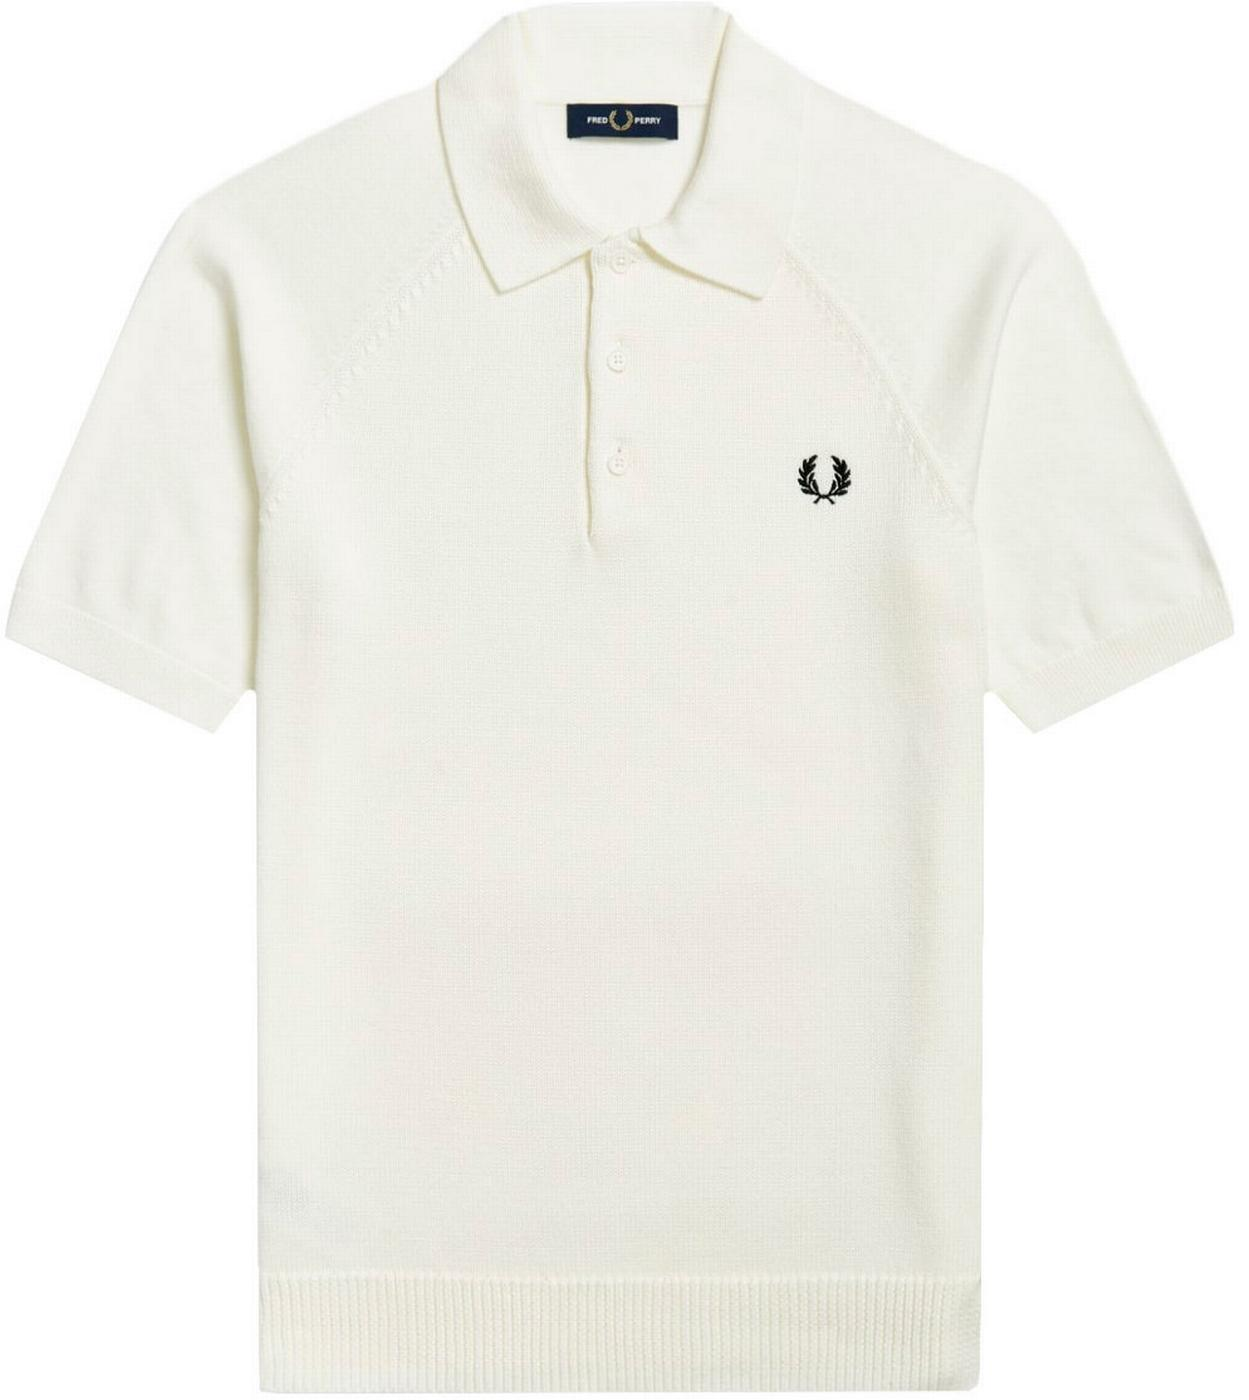 FRED PERRY Retro Mod Textured Knitted Polo Shirt